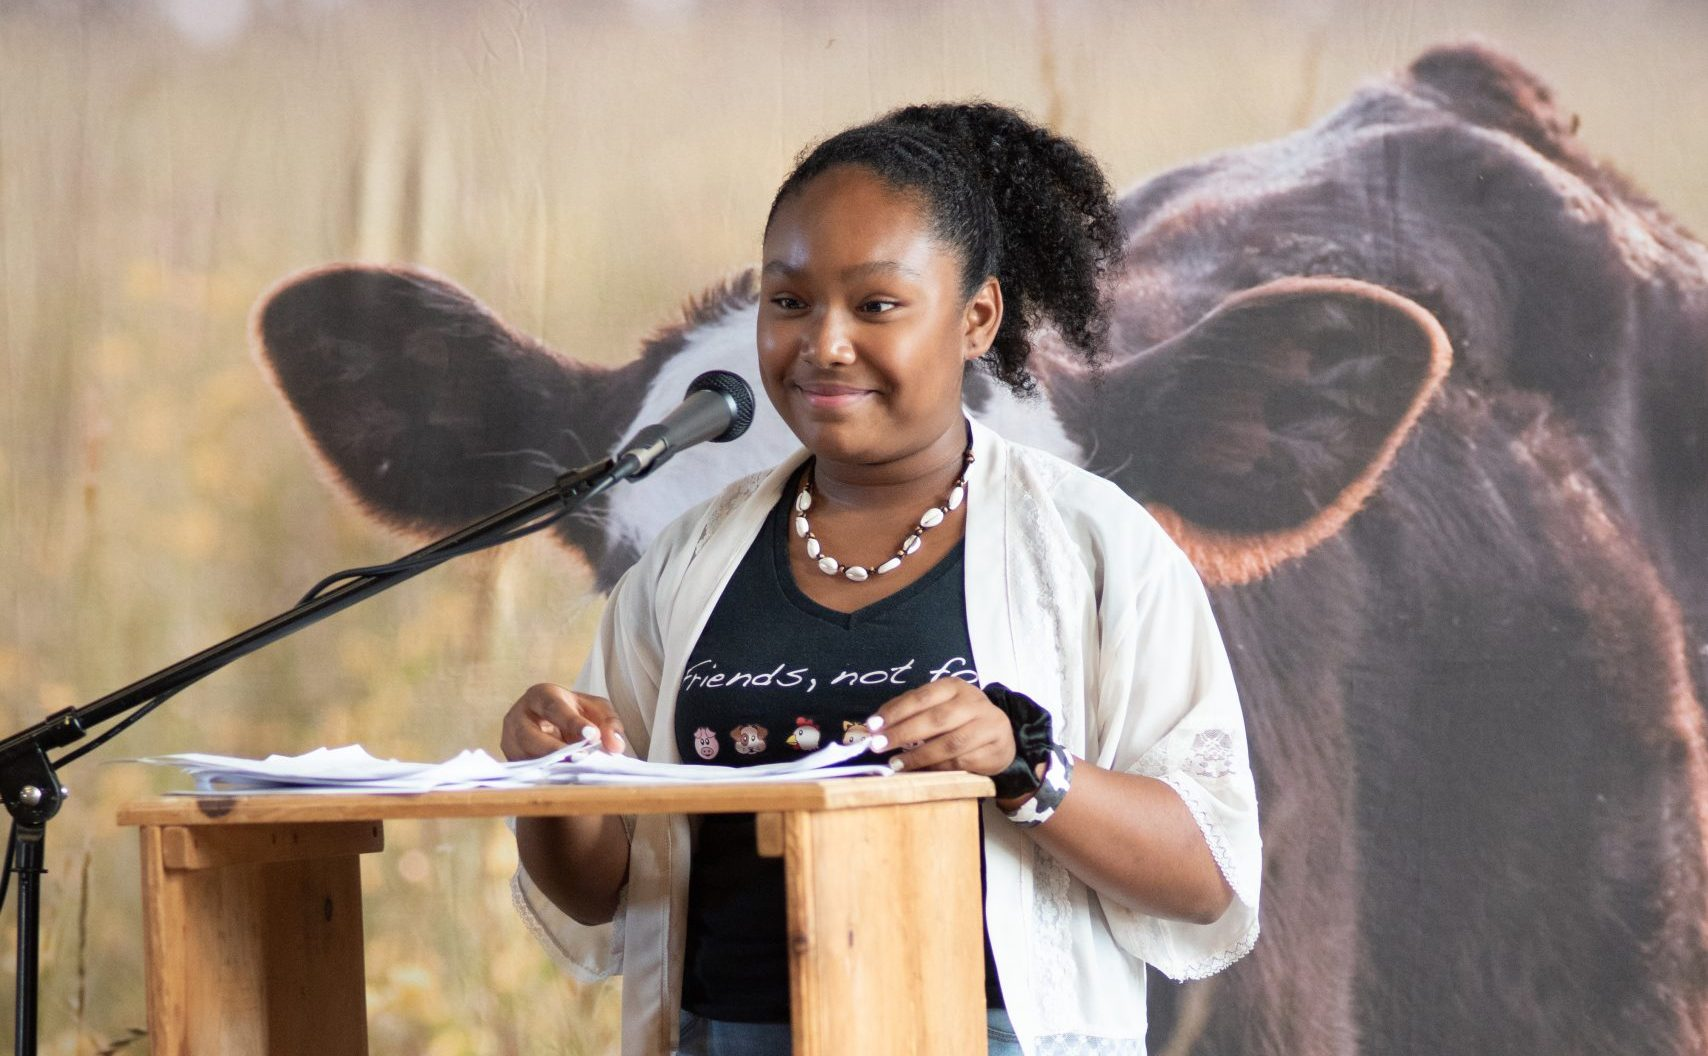 Genesis Butler speaking at a Farm Sanctuary event.